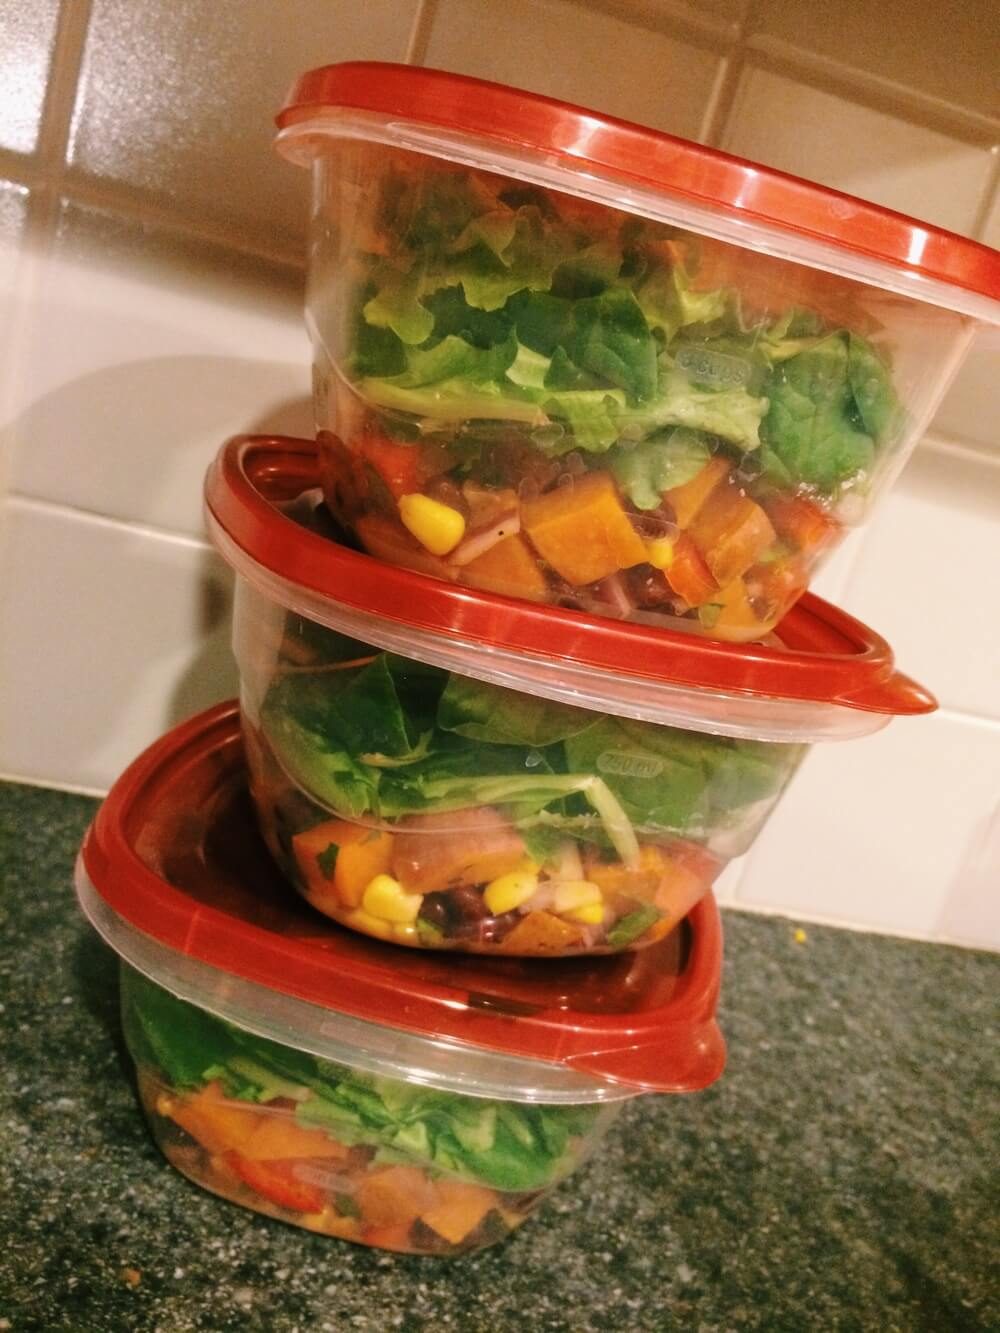 Southwestern Sweet Potato Salad   An oldie but a goodie! Put the sweet potato salad on the bottom so the dressing doesn't make the greens soggy!